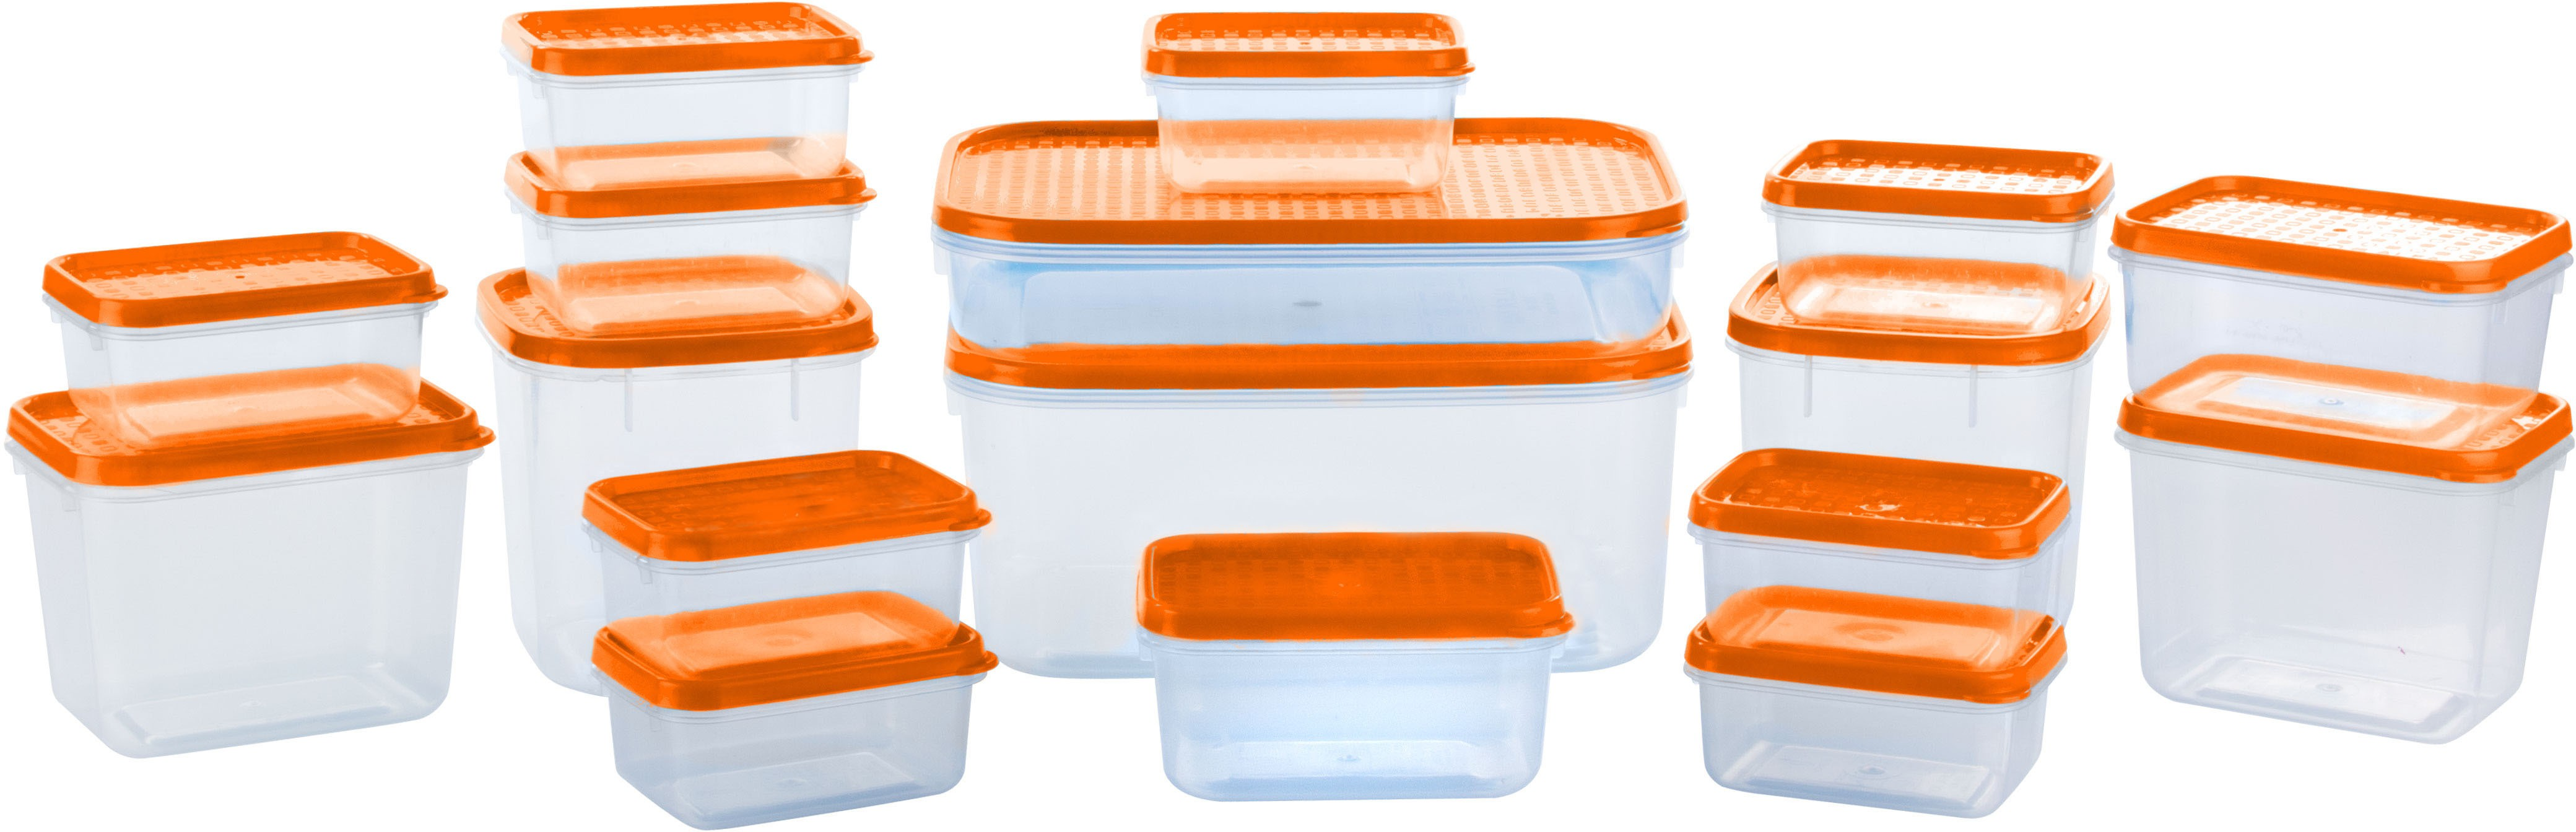 Flipkart - 17 piece container set Just at Rs. 299